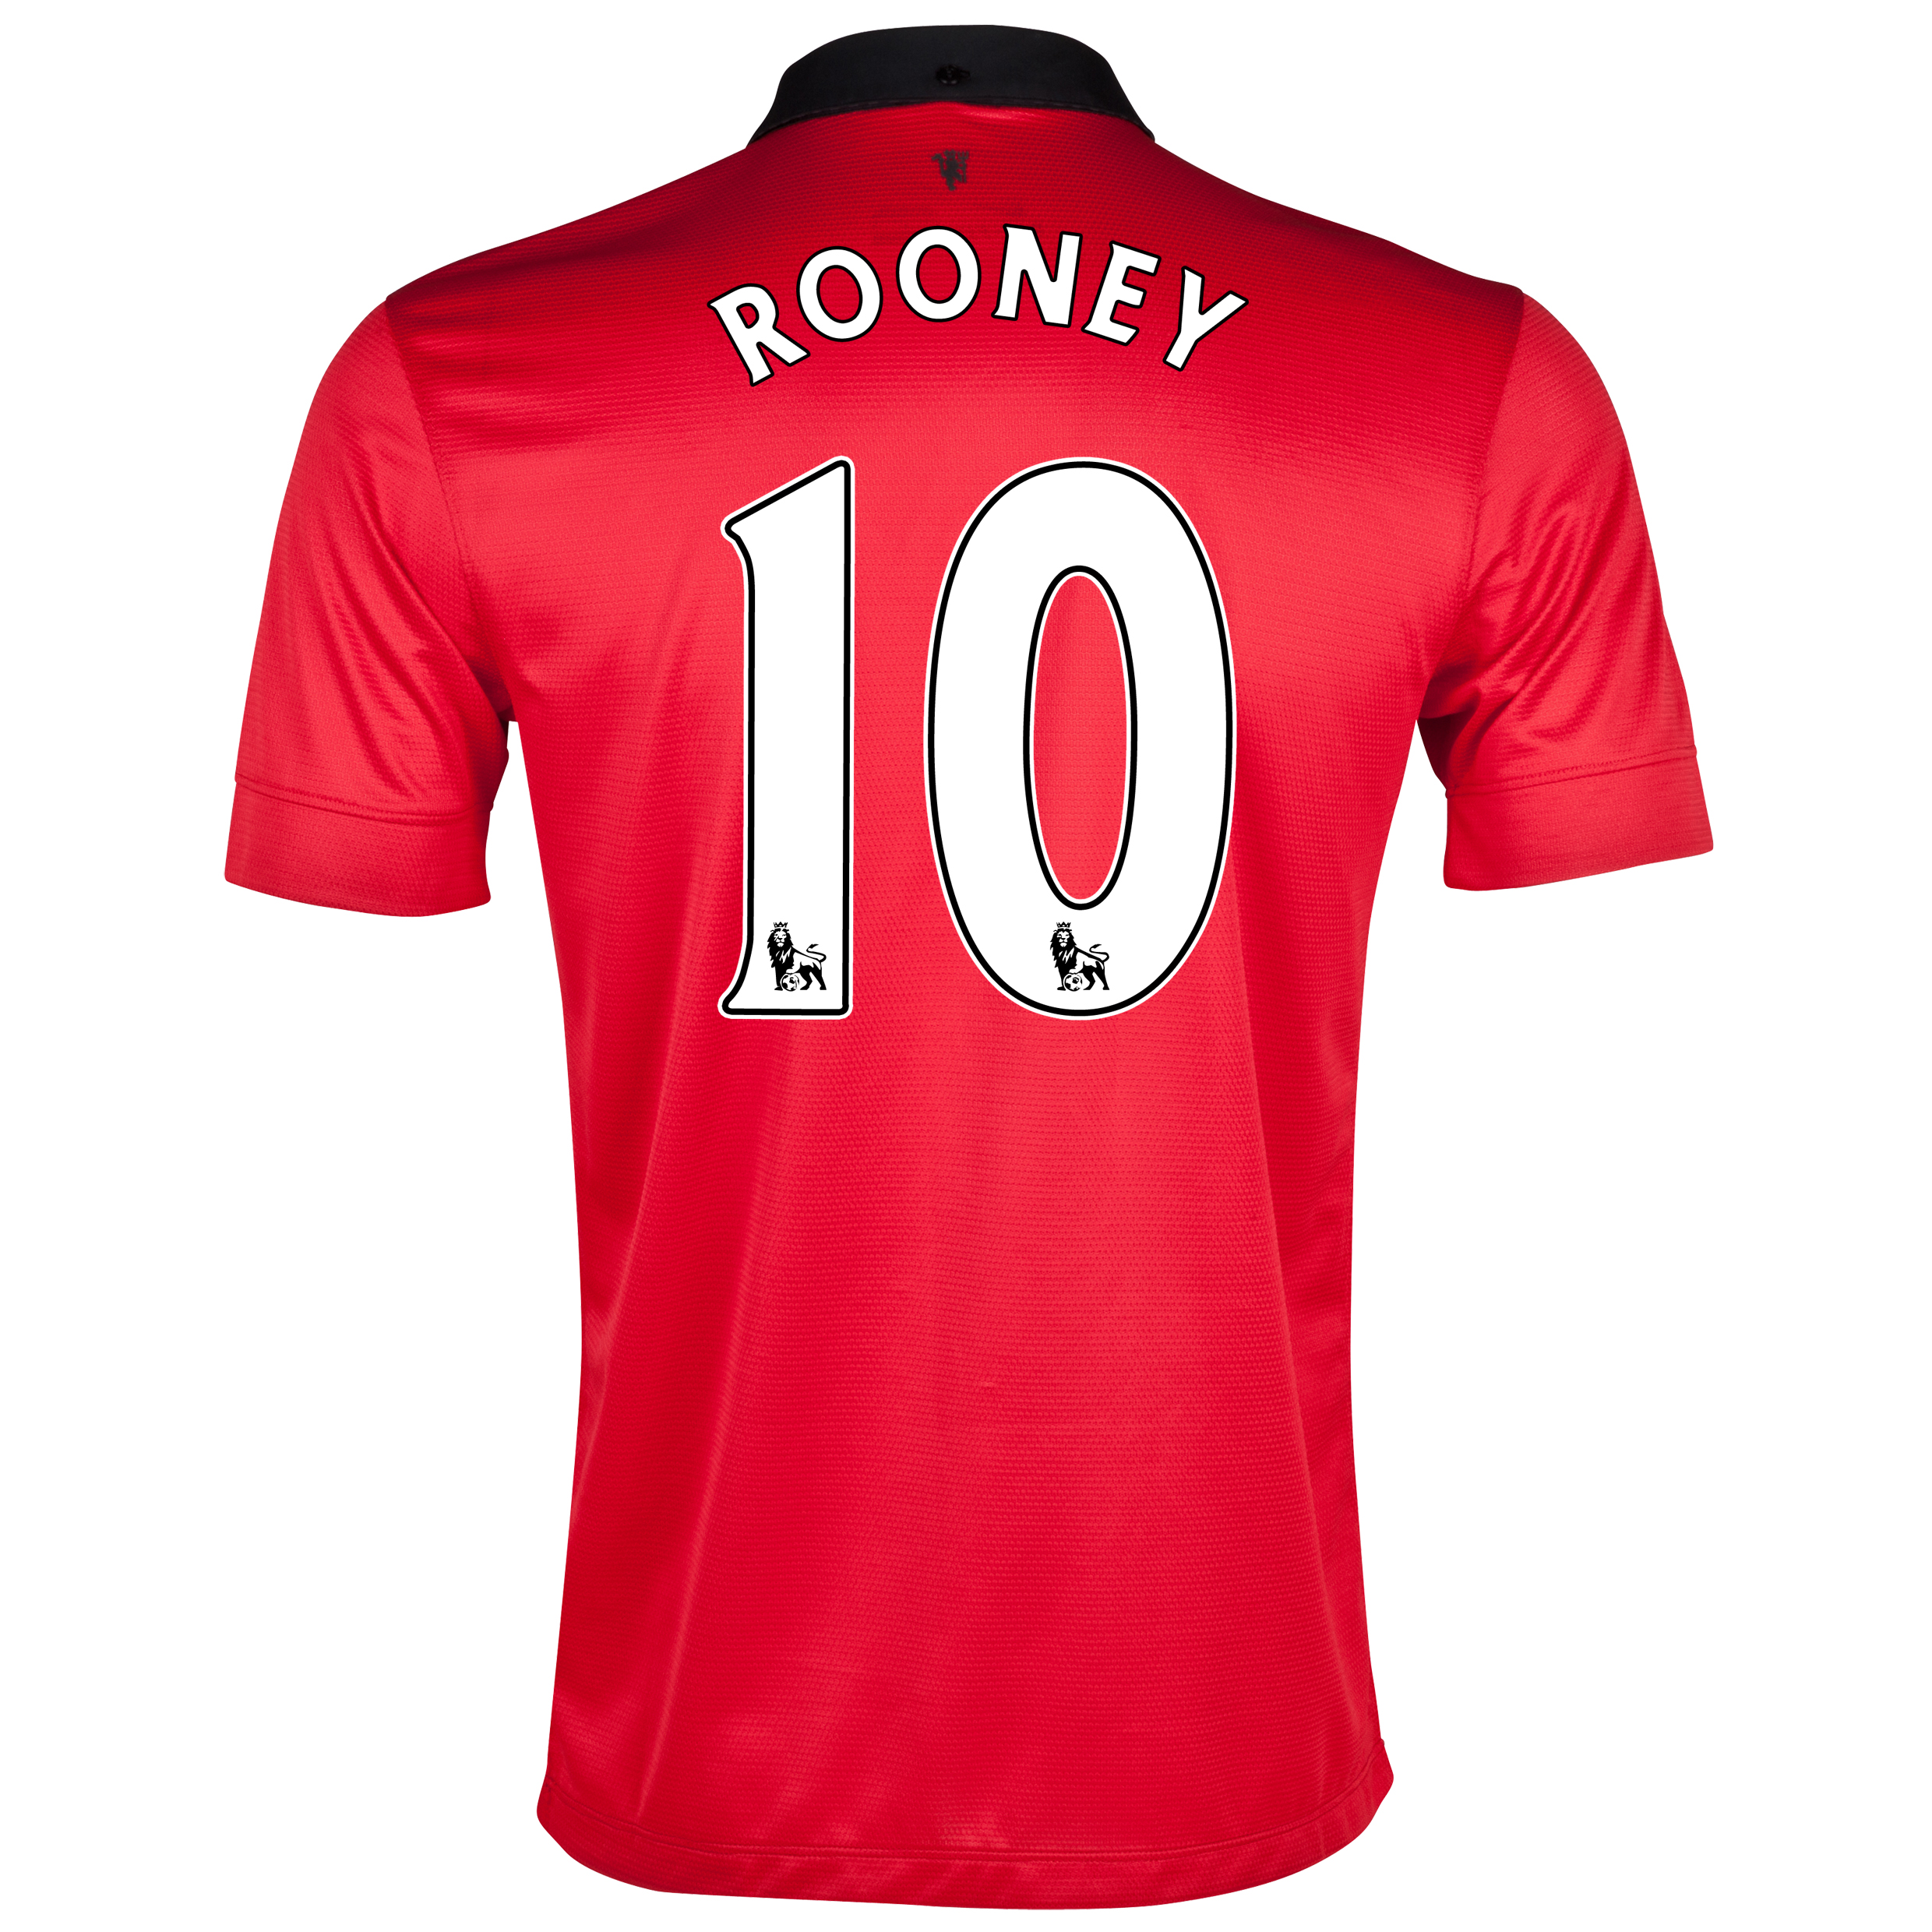 Manchester United Home Shirt 2013/14 with Rooney 10 printing